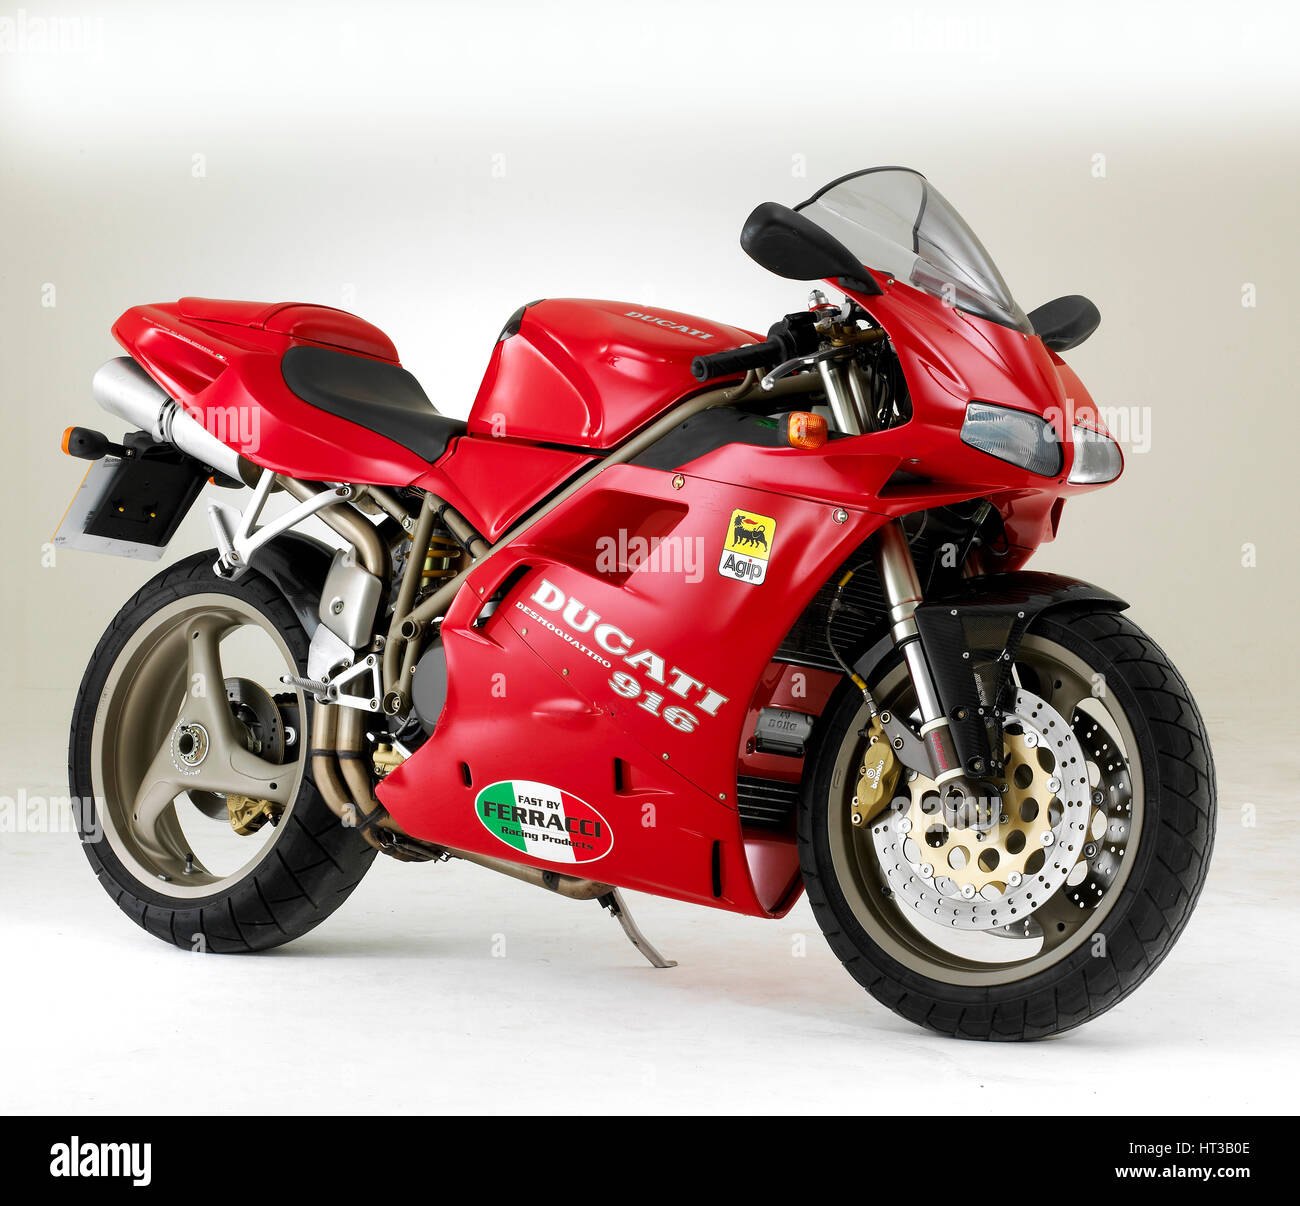 1995 Ducati 916. Artist: Unknown. - Stock Image